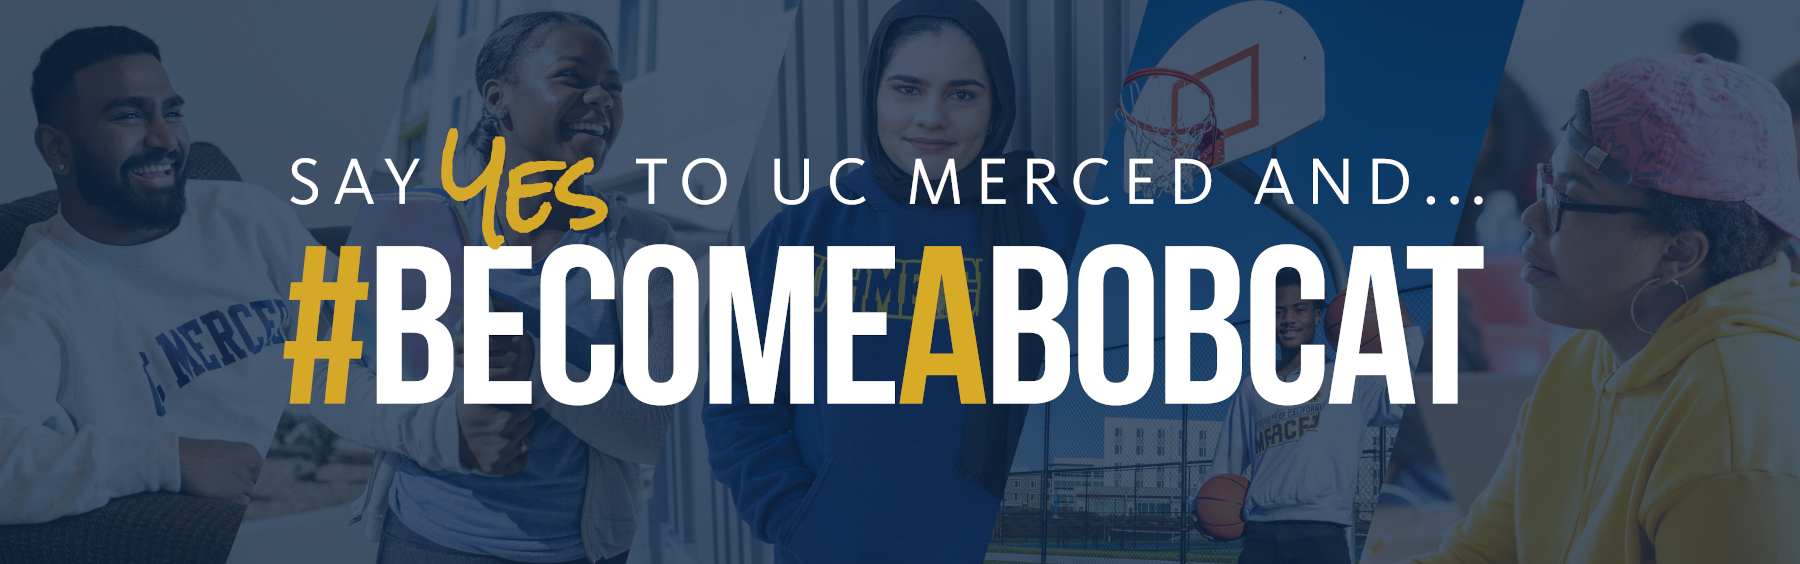 Say Yes to UC Merced